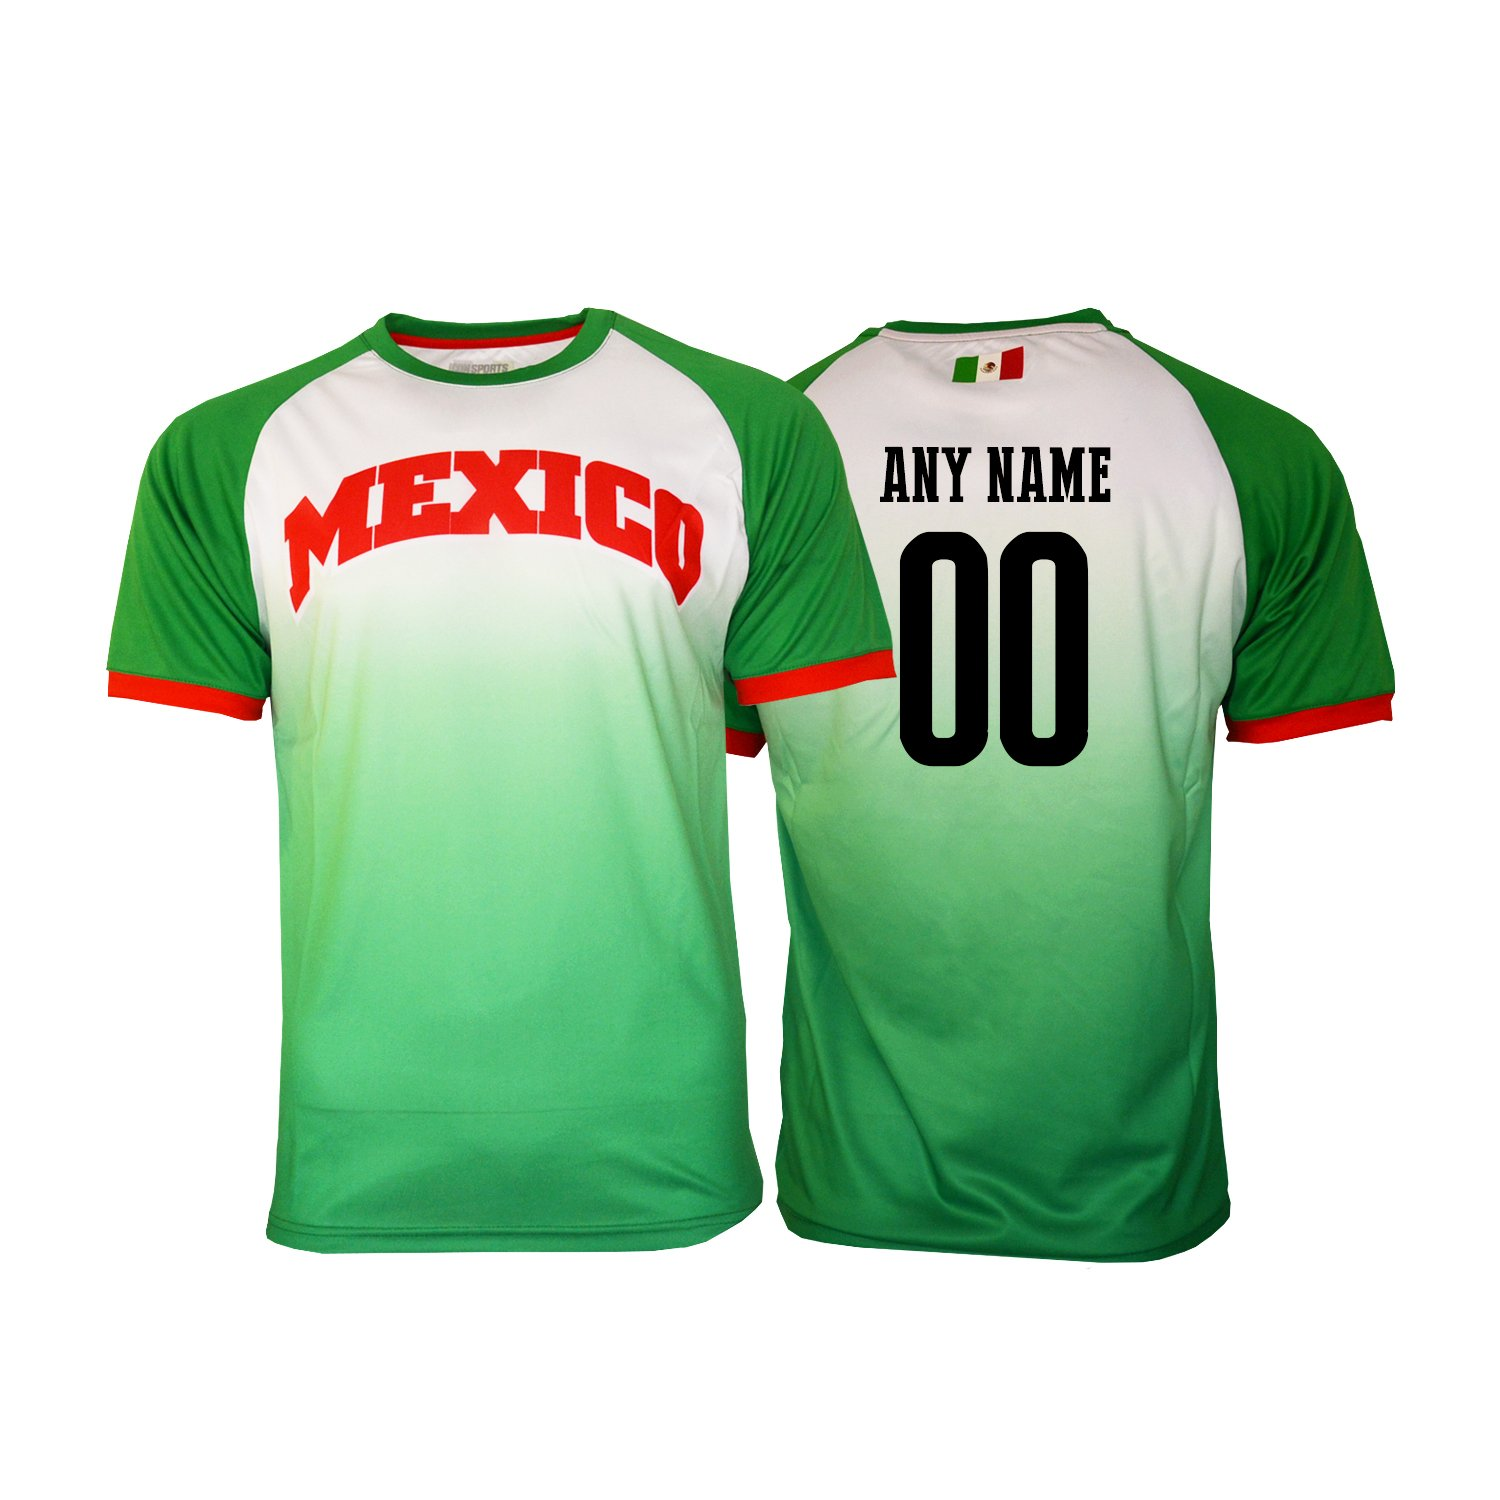 94c597e8dec Amazon.com : Pana Mexico Soccer Jersey Flag Mexican Adult Training Custom  Name and Number : Clothing